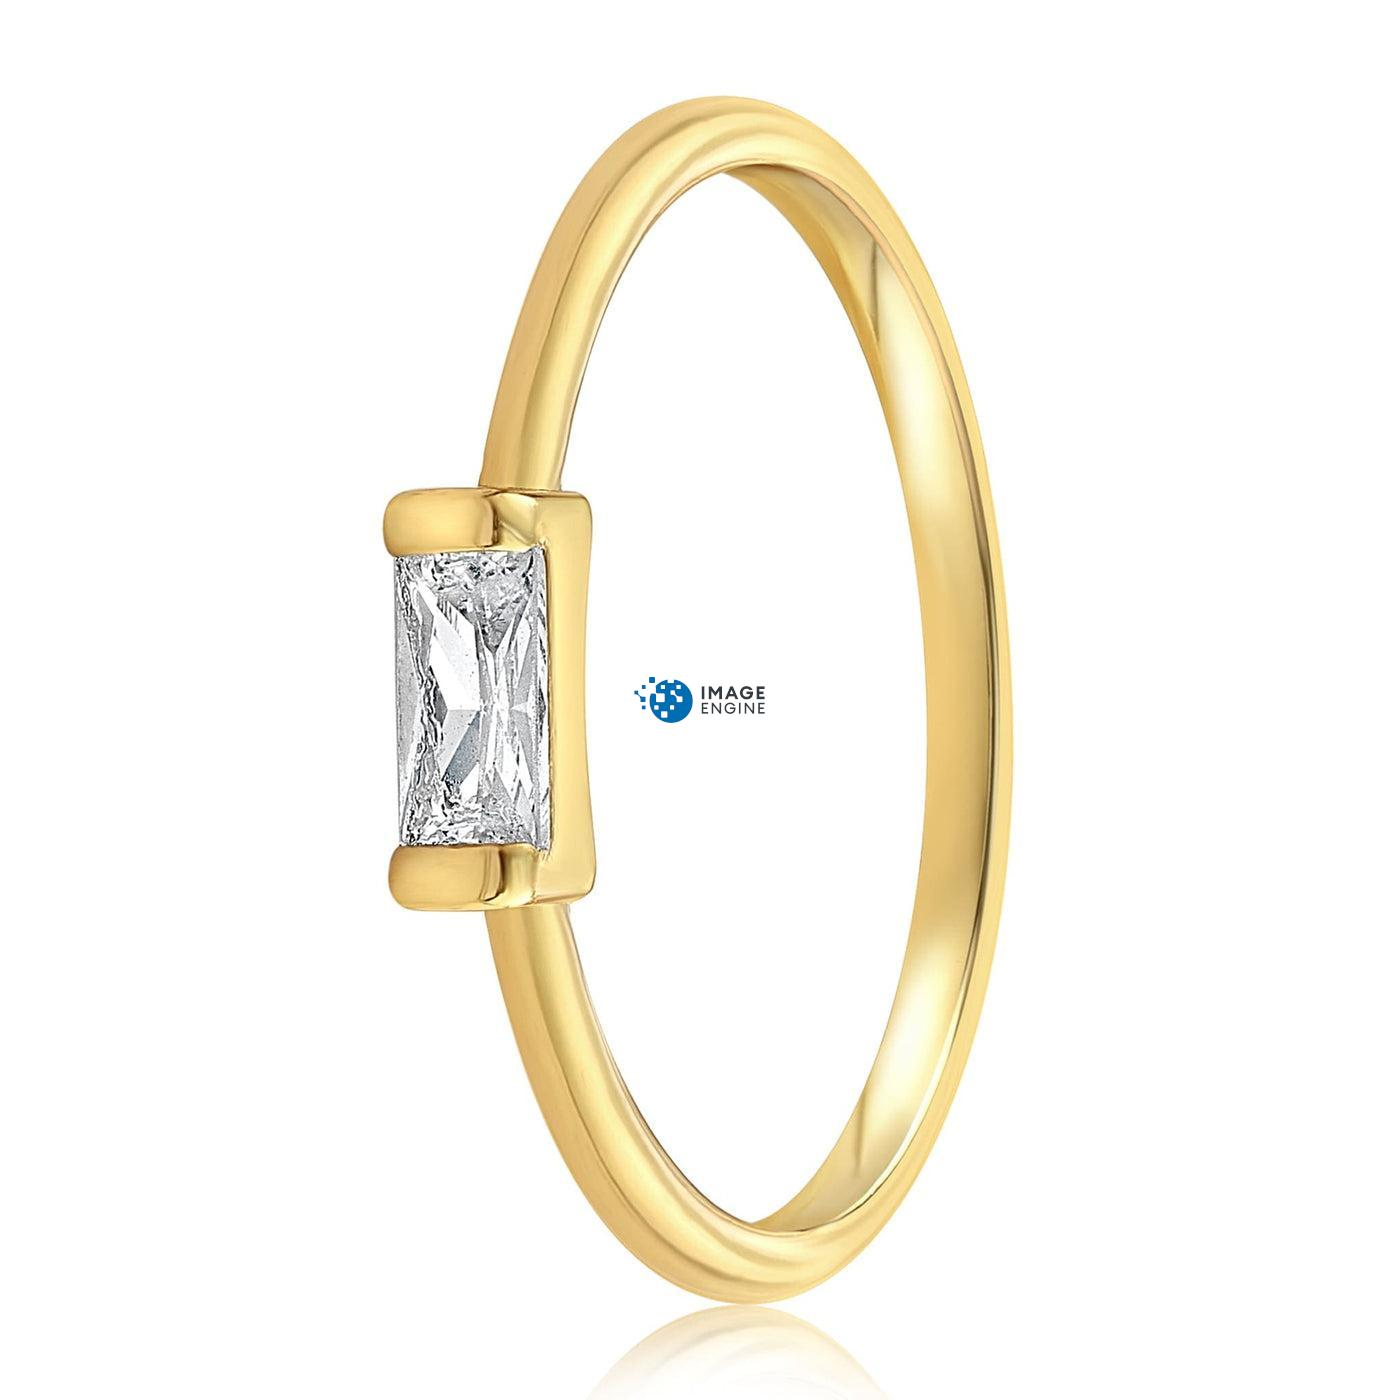 Moonie Glass Geometric Ring - Side View - 18K Yellow Gold Vermeil